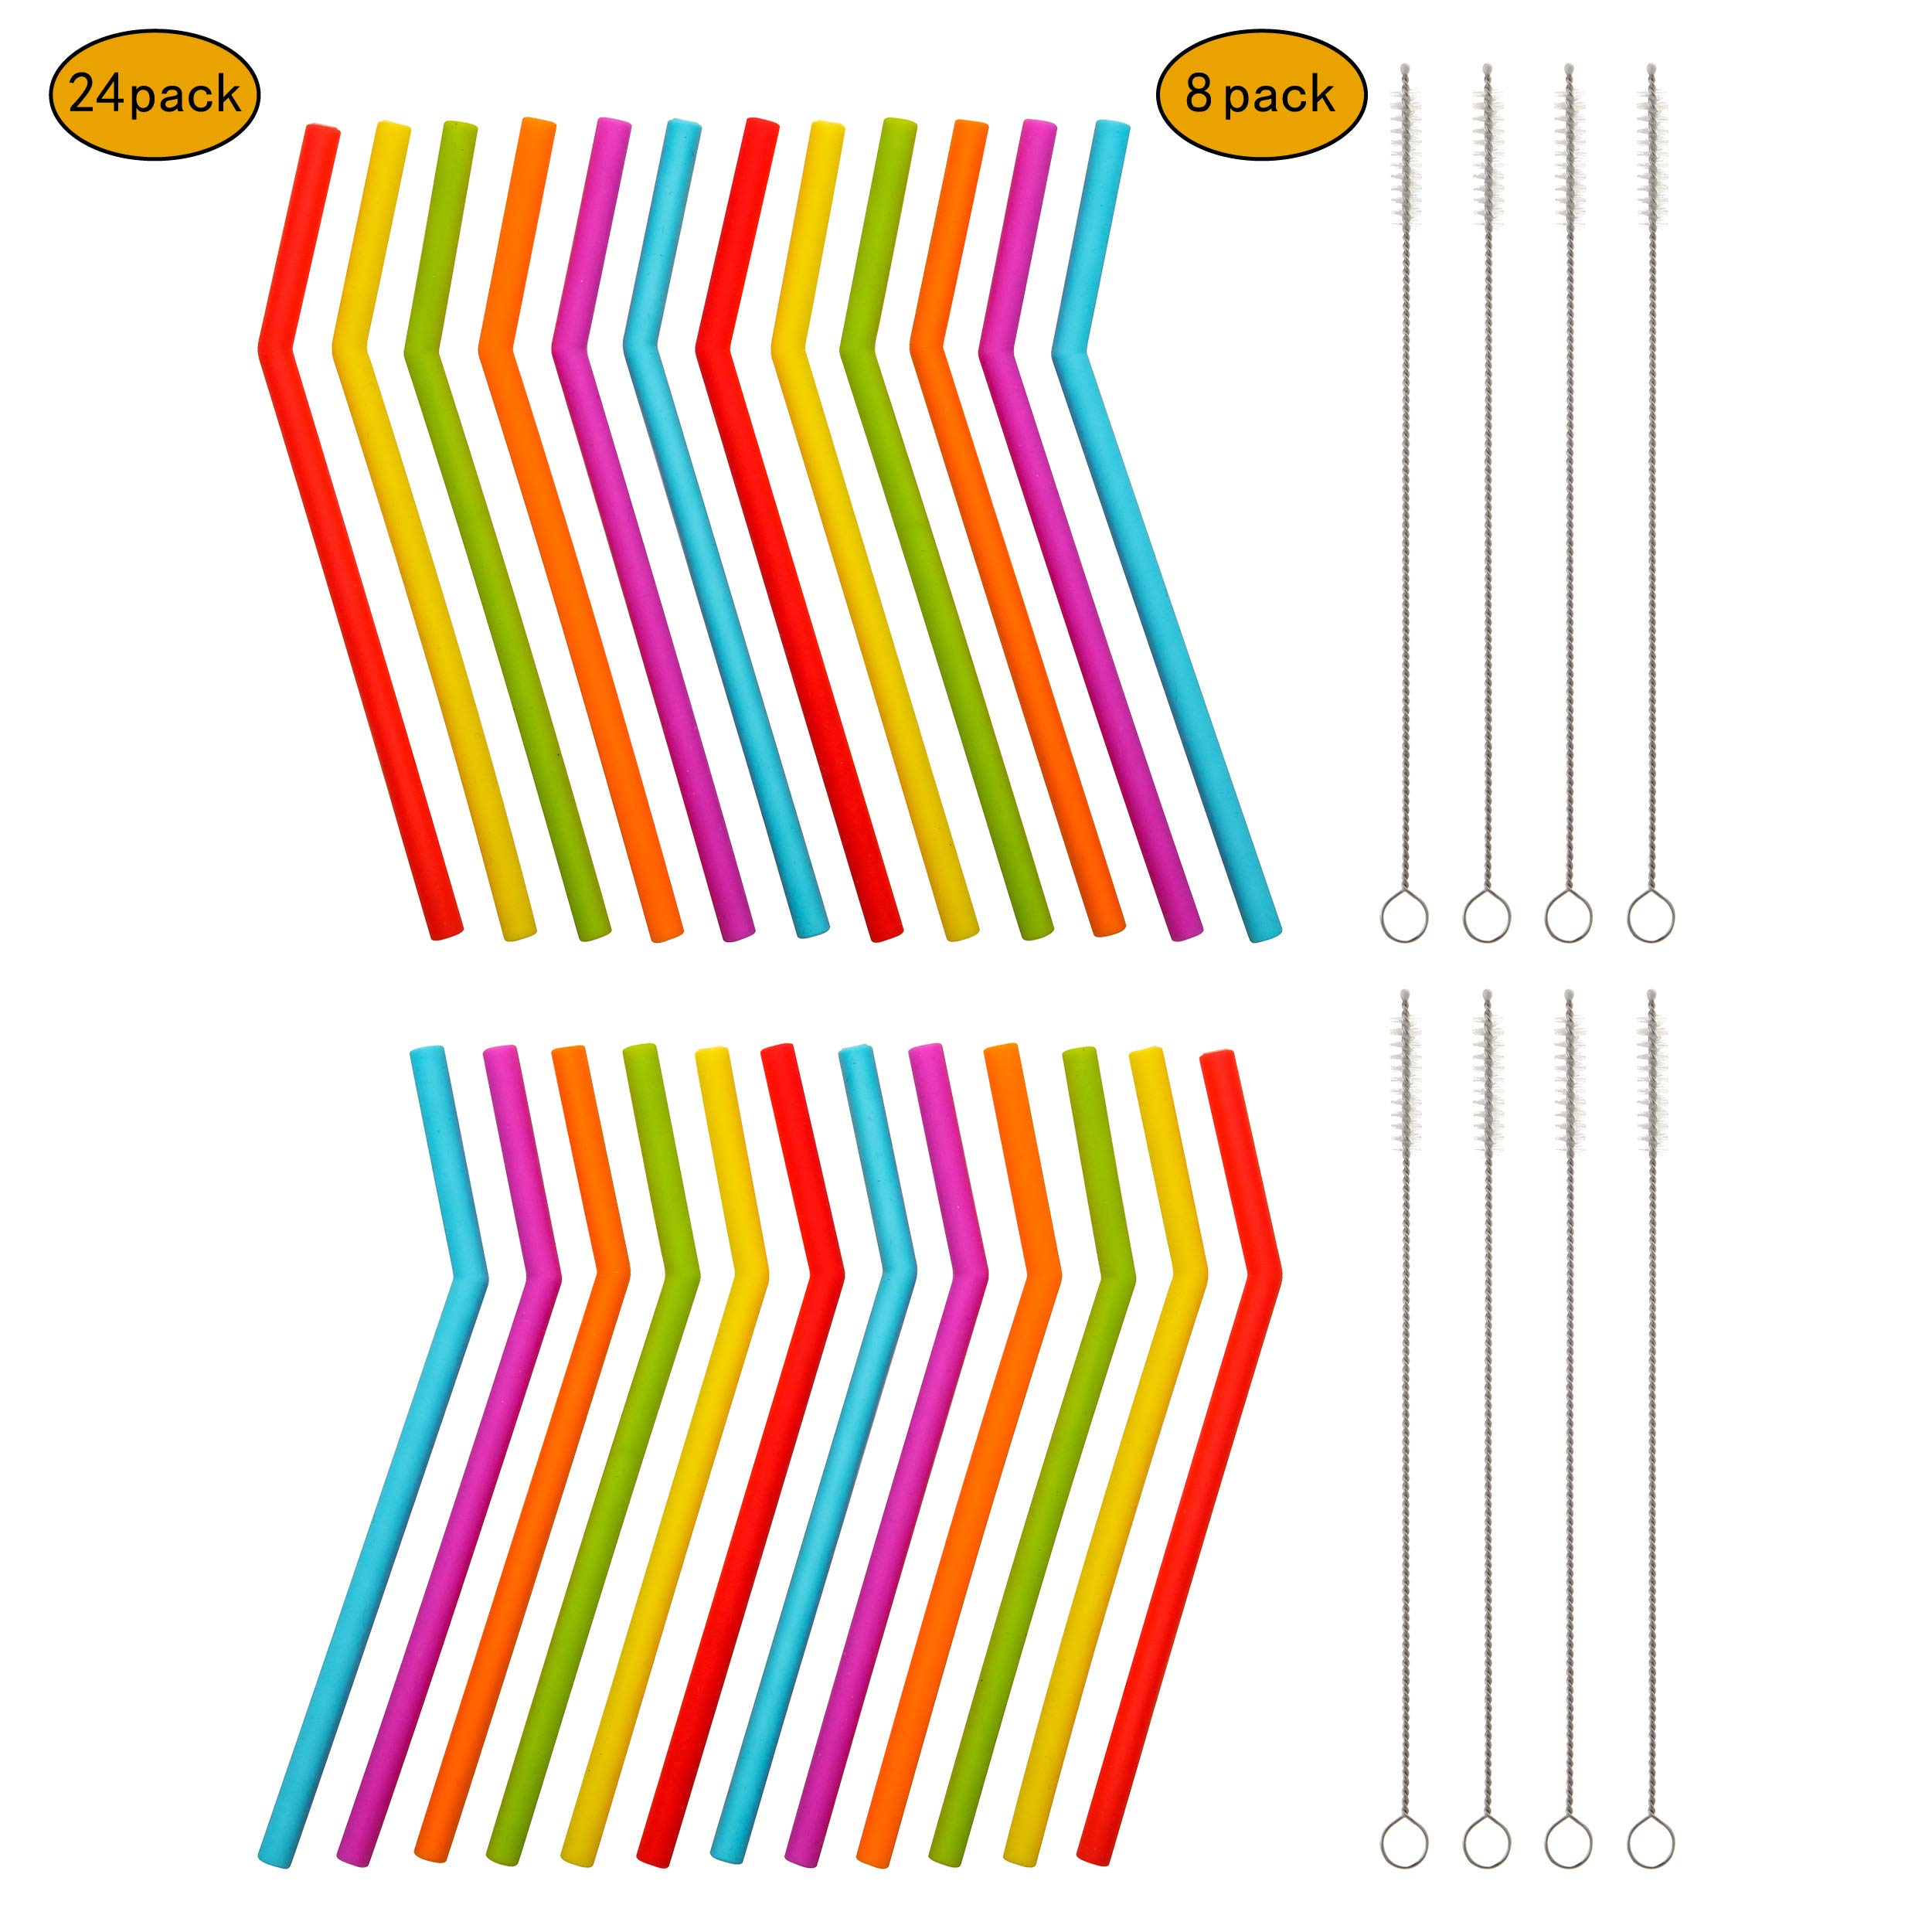 Reusable Silicone Straws for Toddlers & Kids - 24 pcs Flexible Short Drink 6.7'' Straws for 6-12 oz Yeti/Rtic/Ozark Tumblers & 8 Cleaning Brushes - BPA Free, Eco-Friendly,no Rubber Tast by Veskaoty